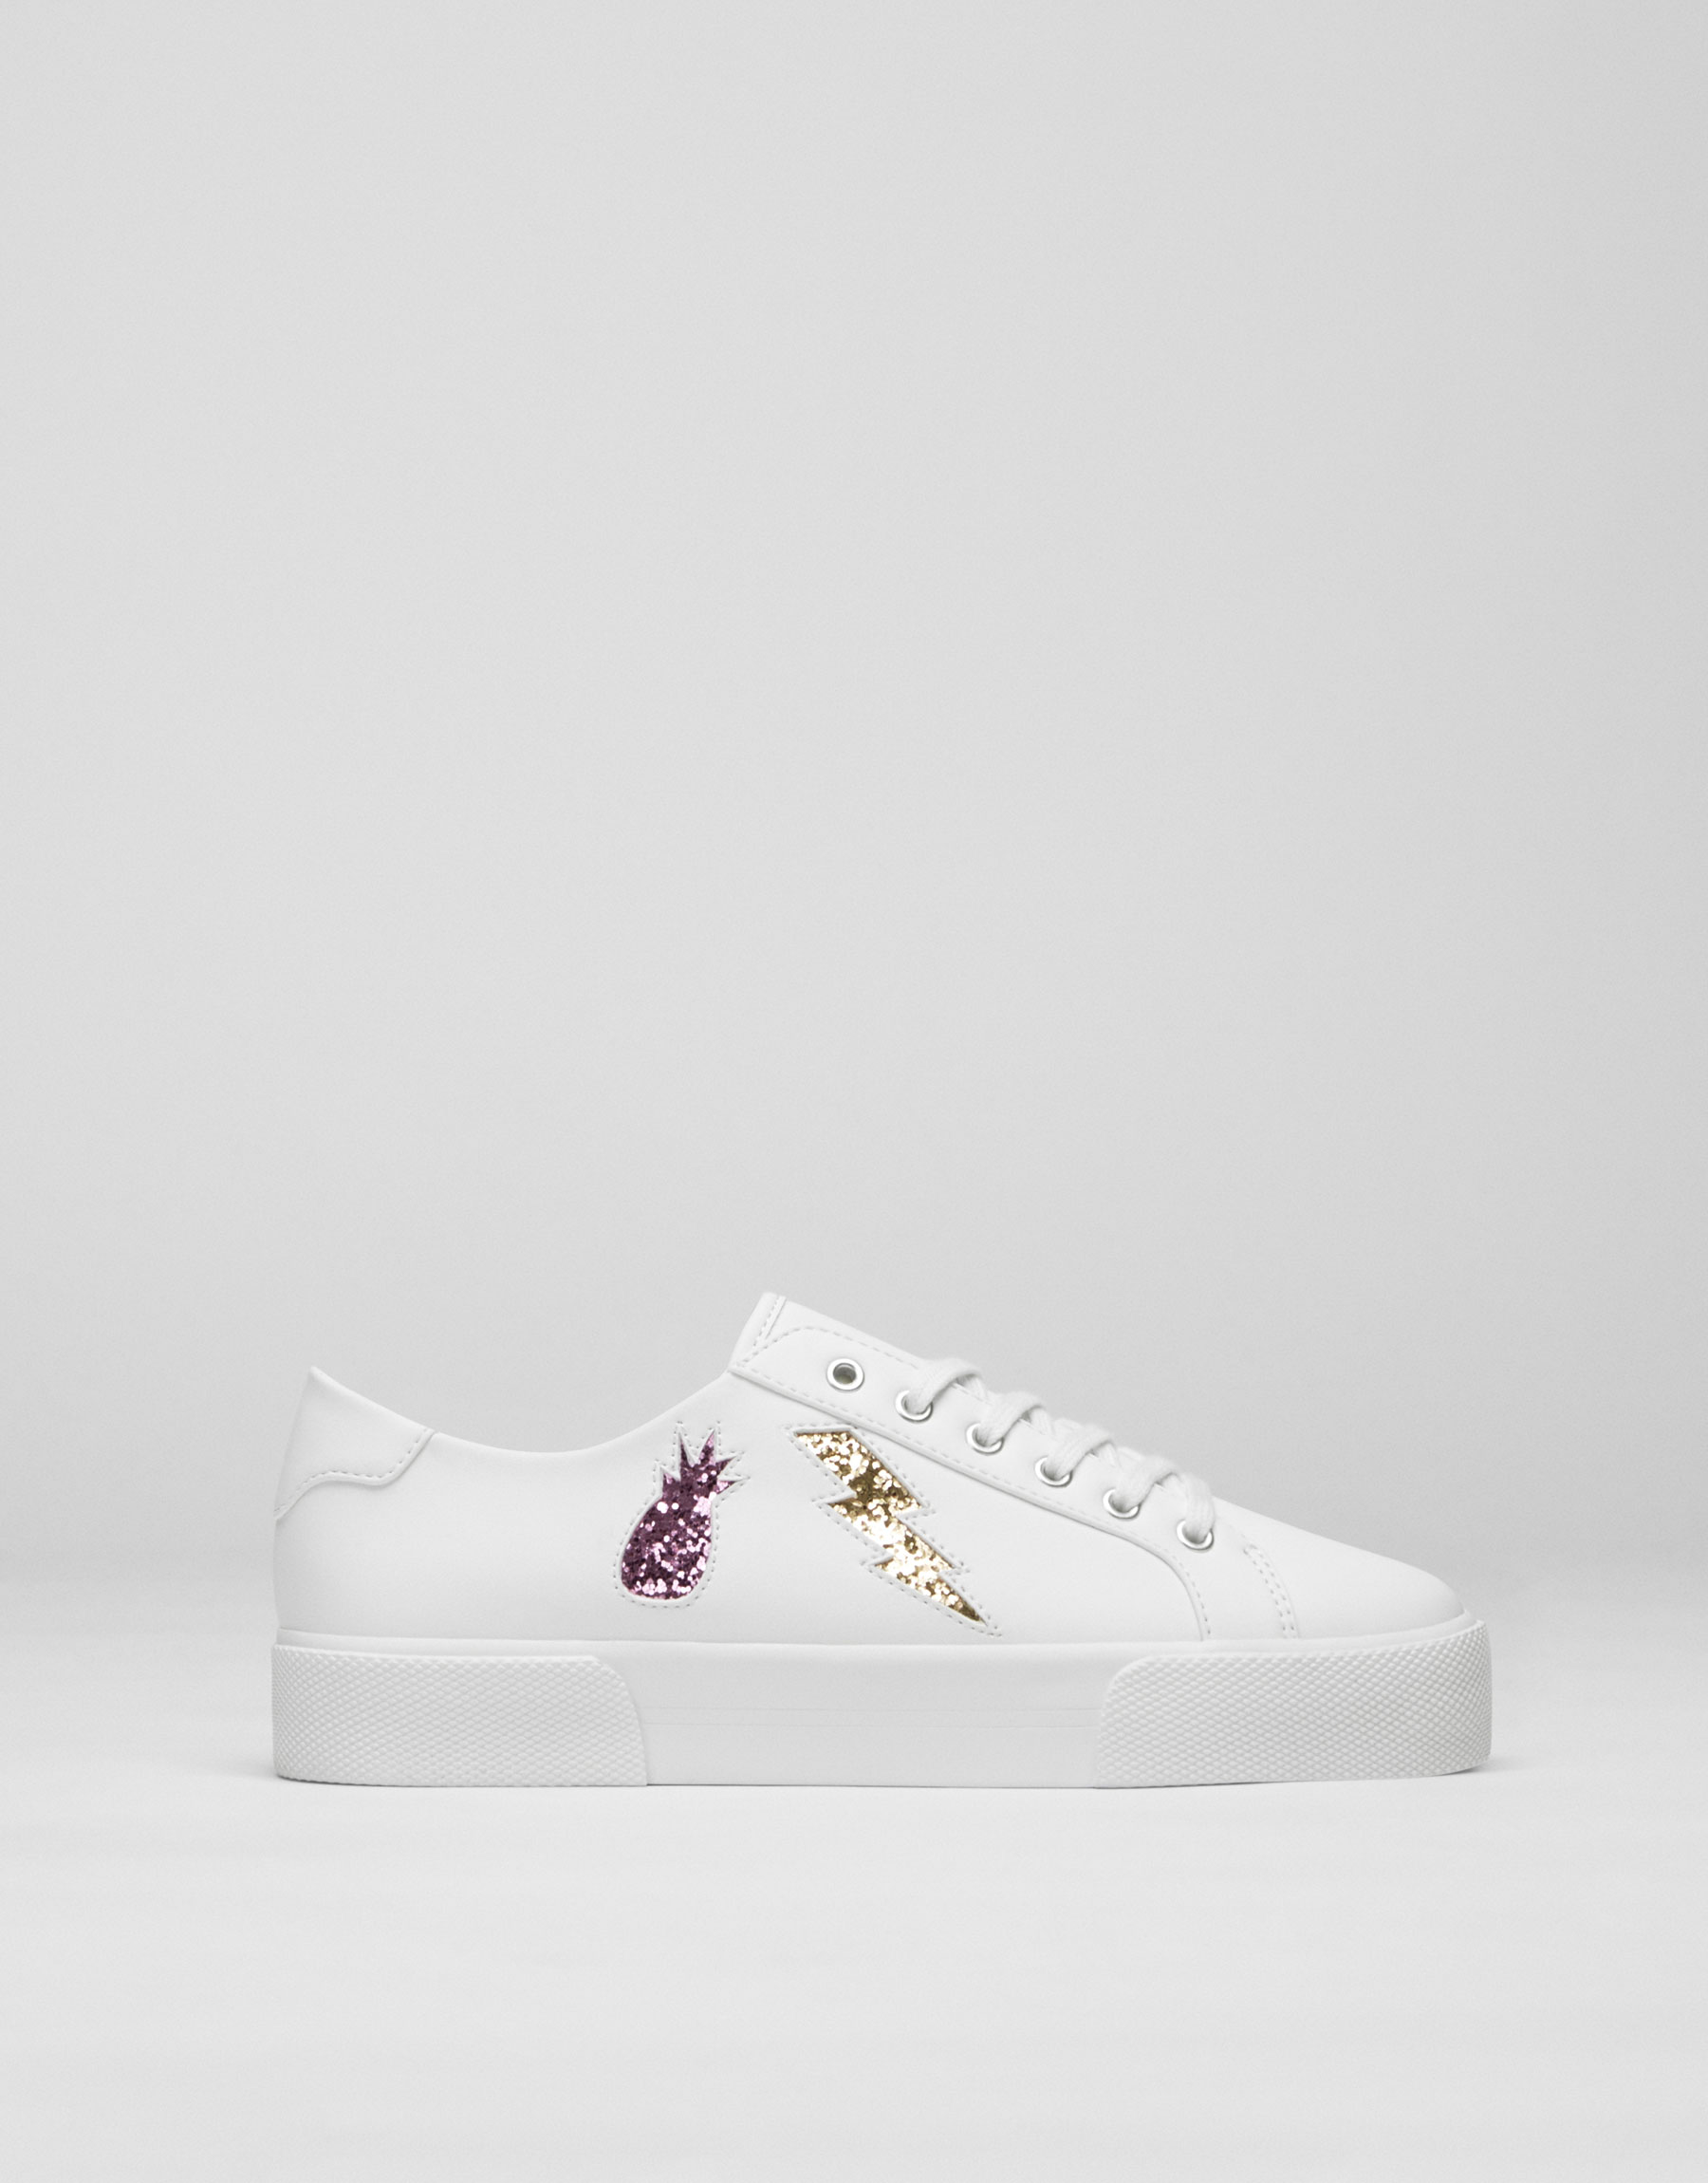 Plimsolls with glittery patches